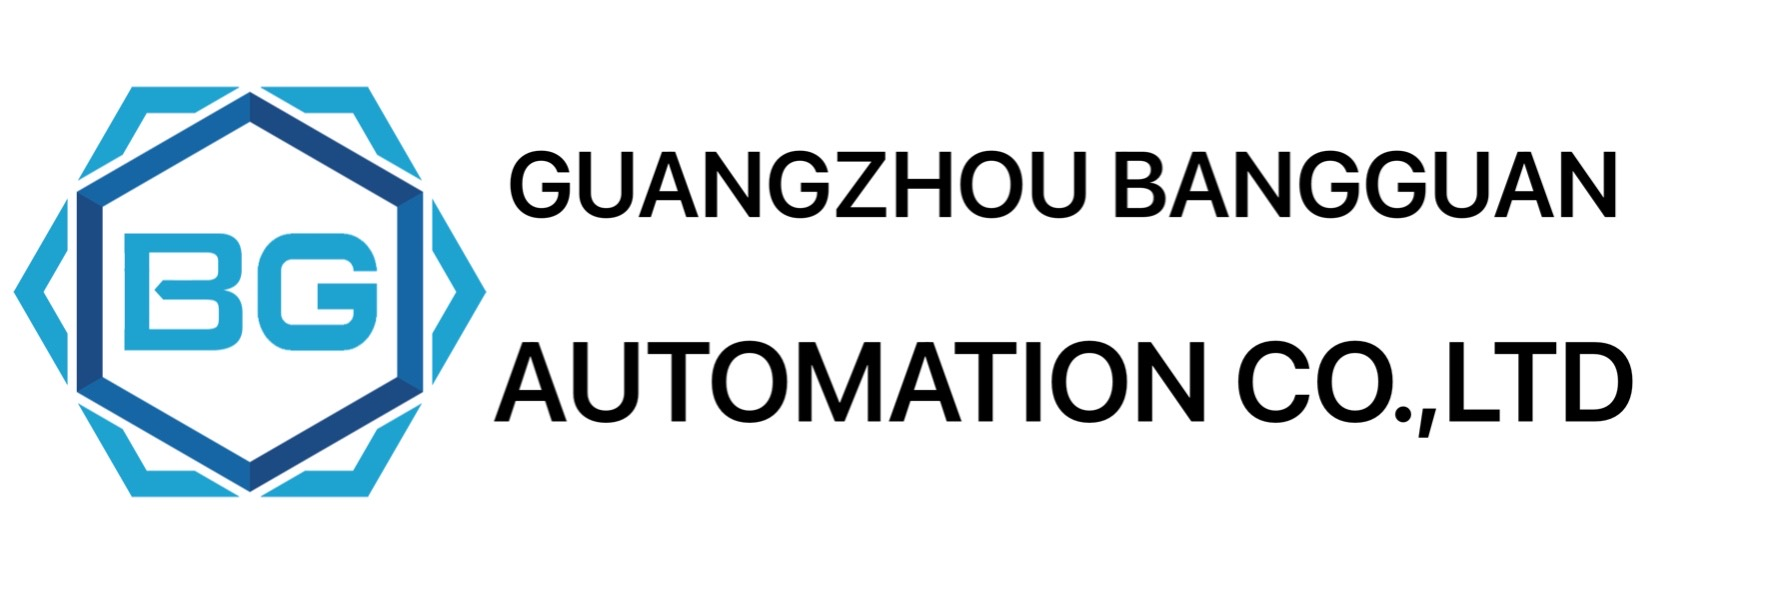 Product Application - GuangZhou BangGuan Automation Co., LTD